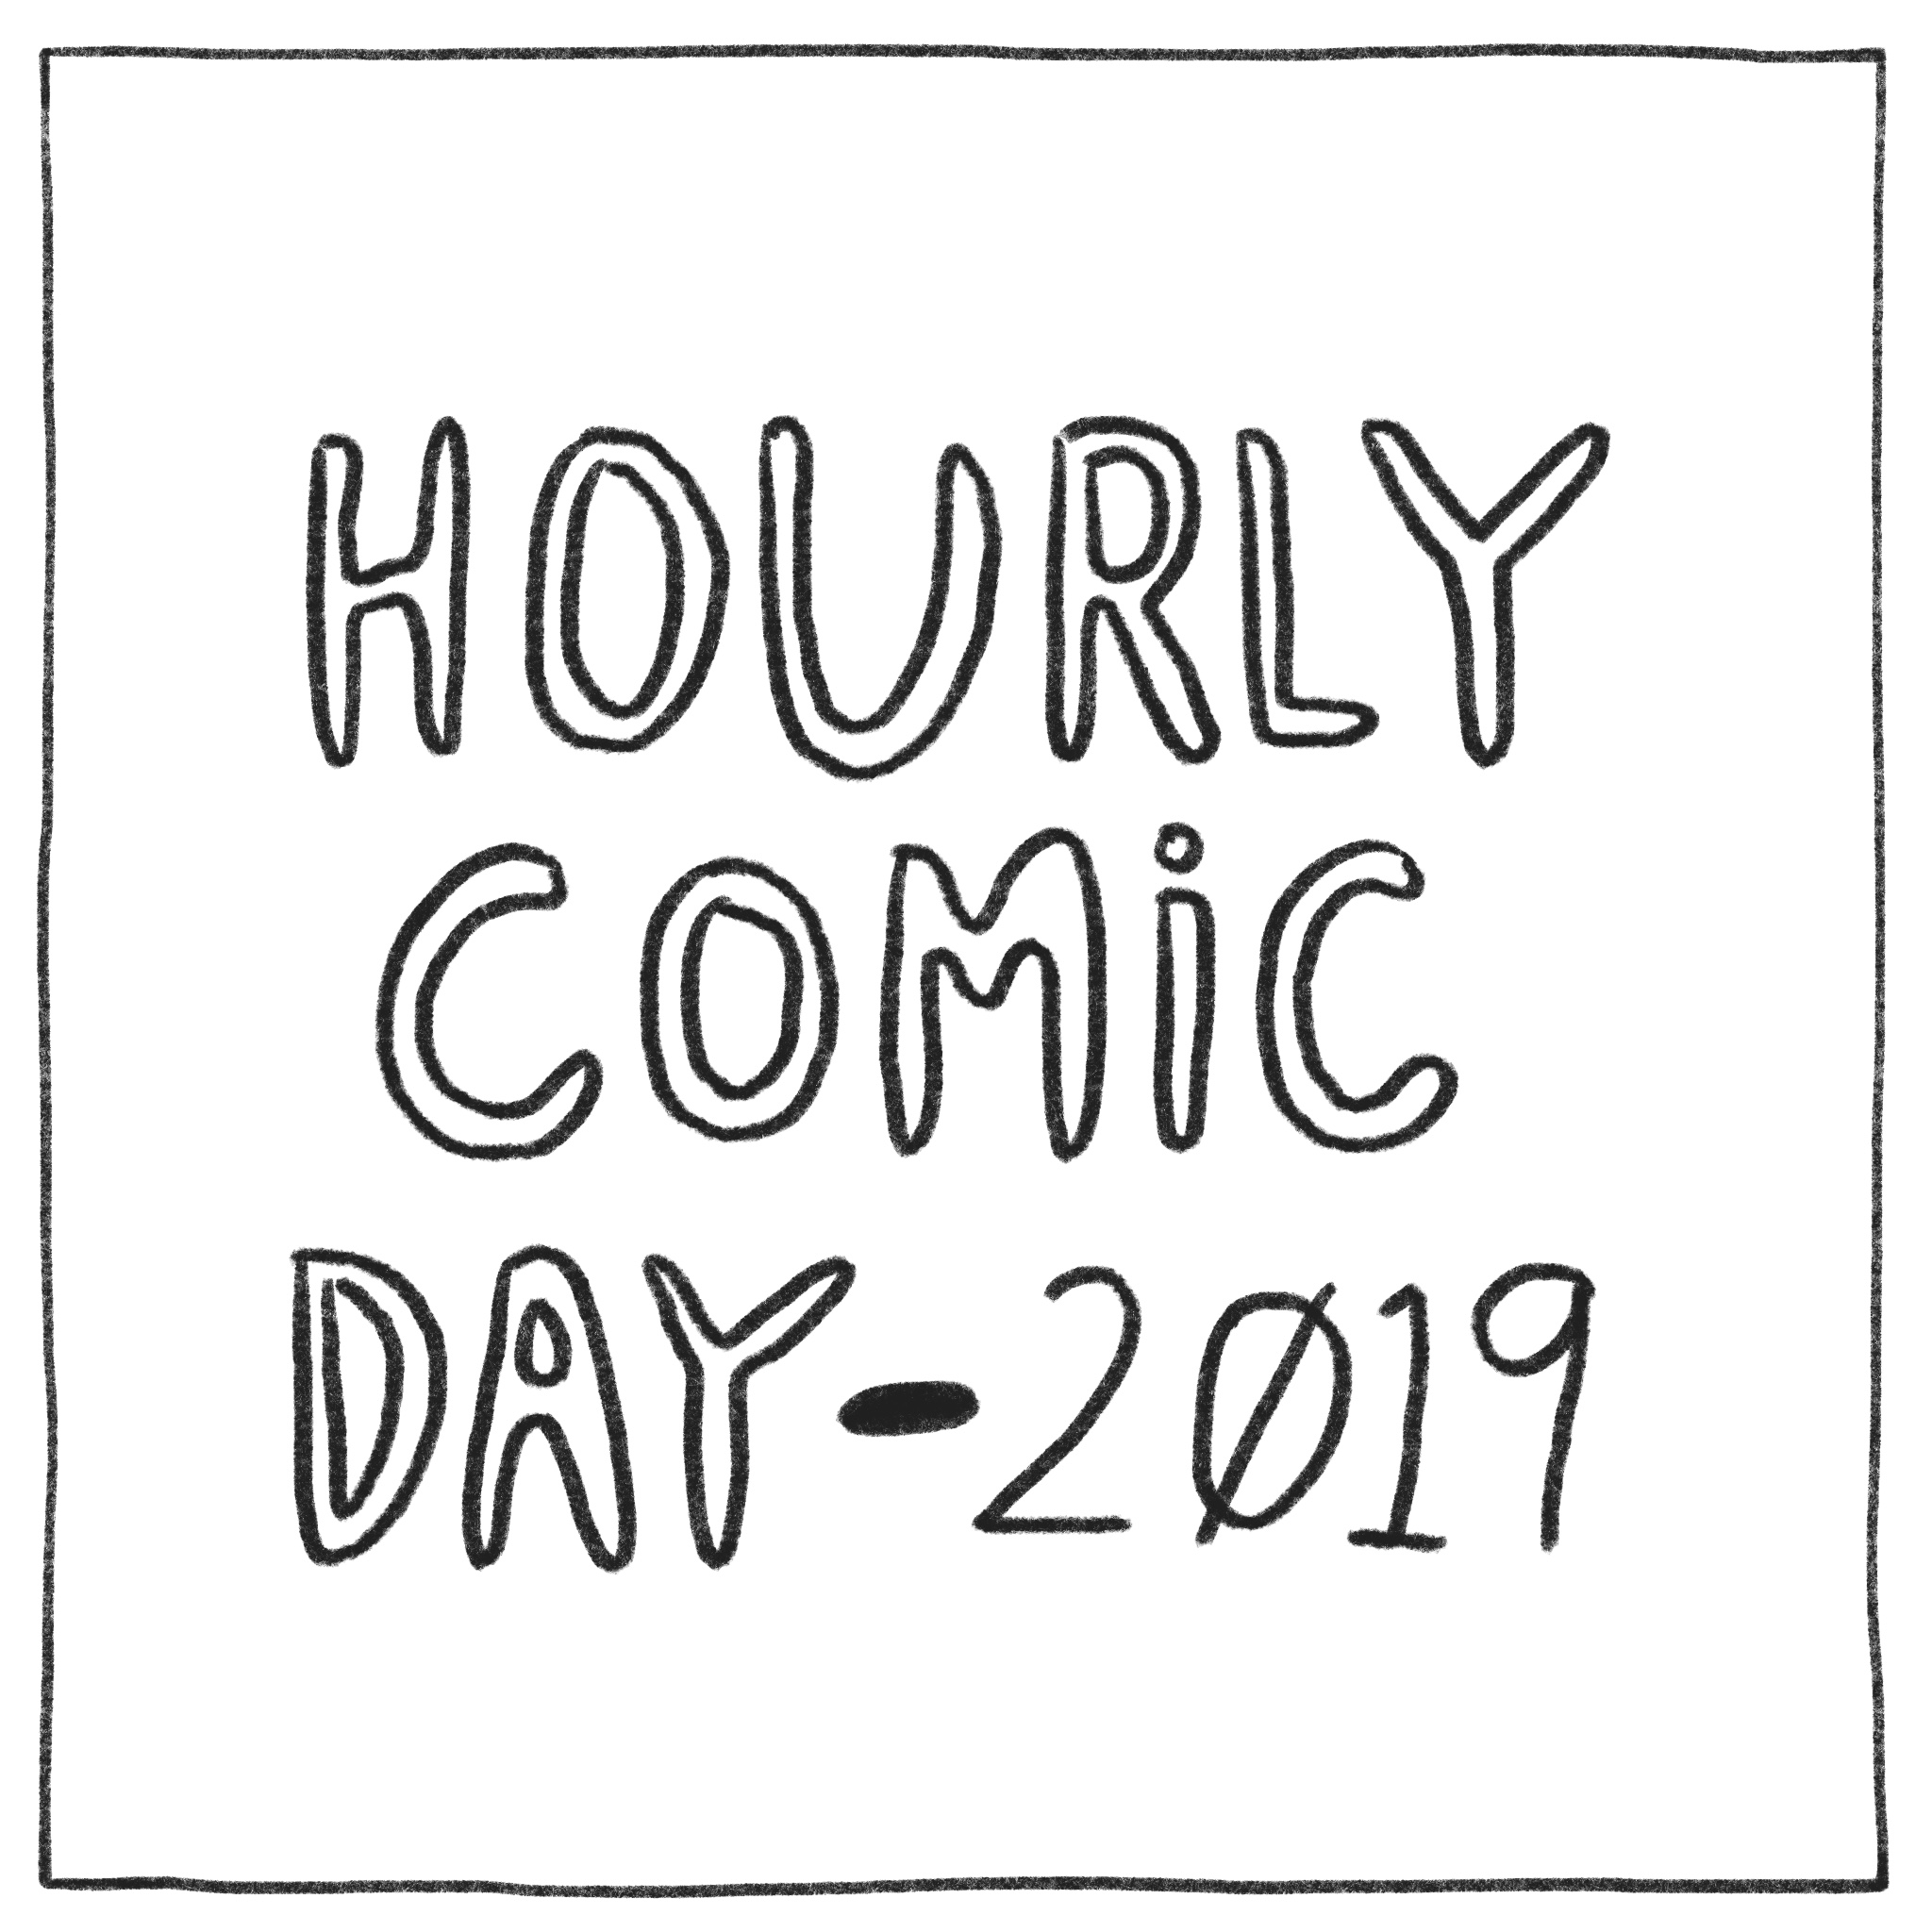 Hourly Comic Day - 2019